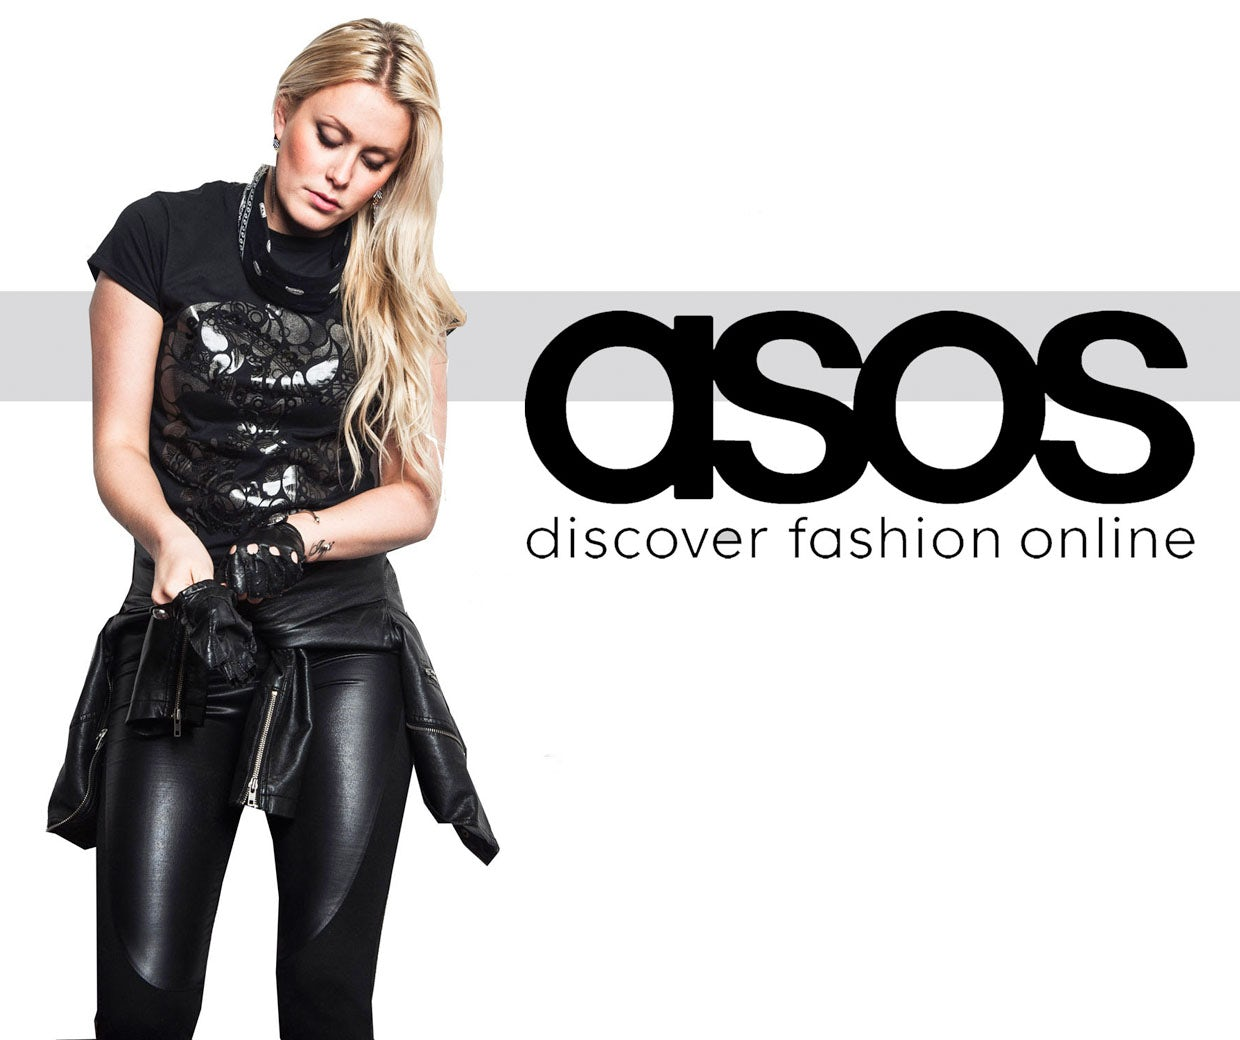 Ellen Hammett: Asos A-List's failure shows you don't need a loyalty scheme to drive loyalty